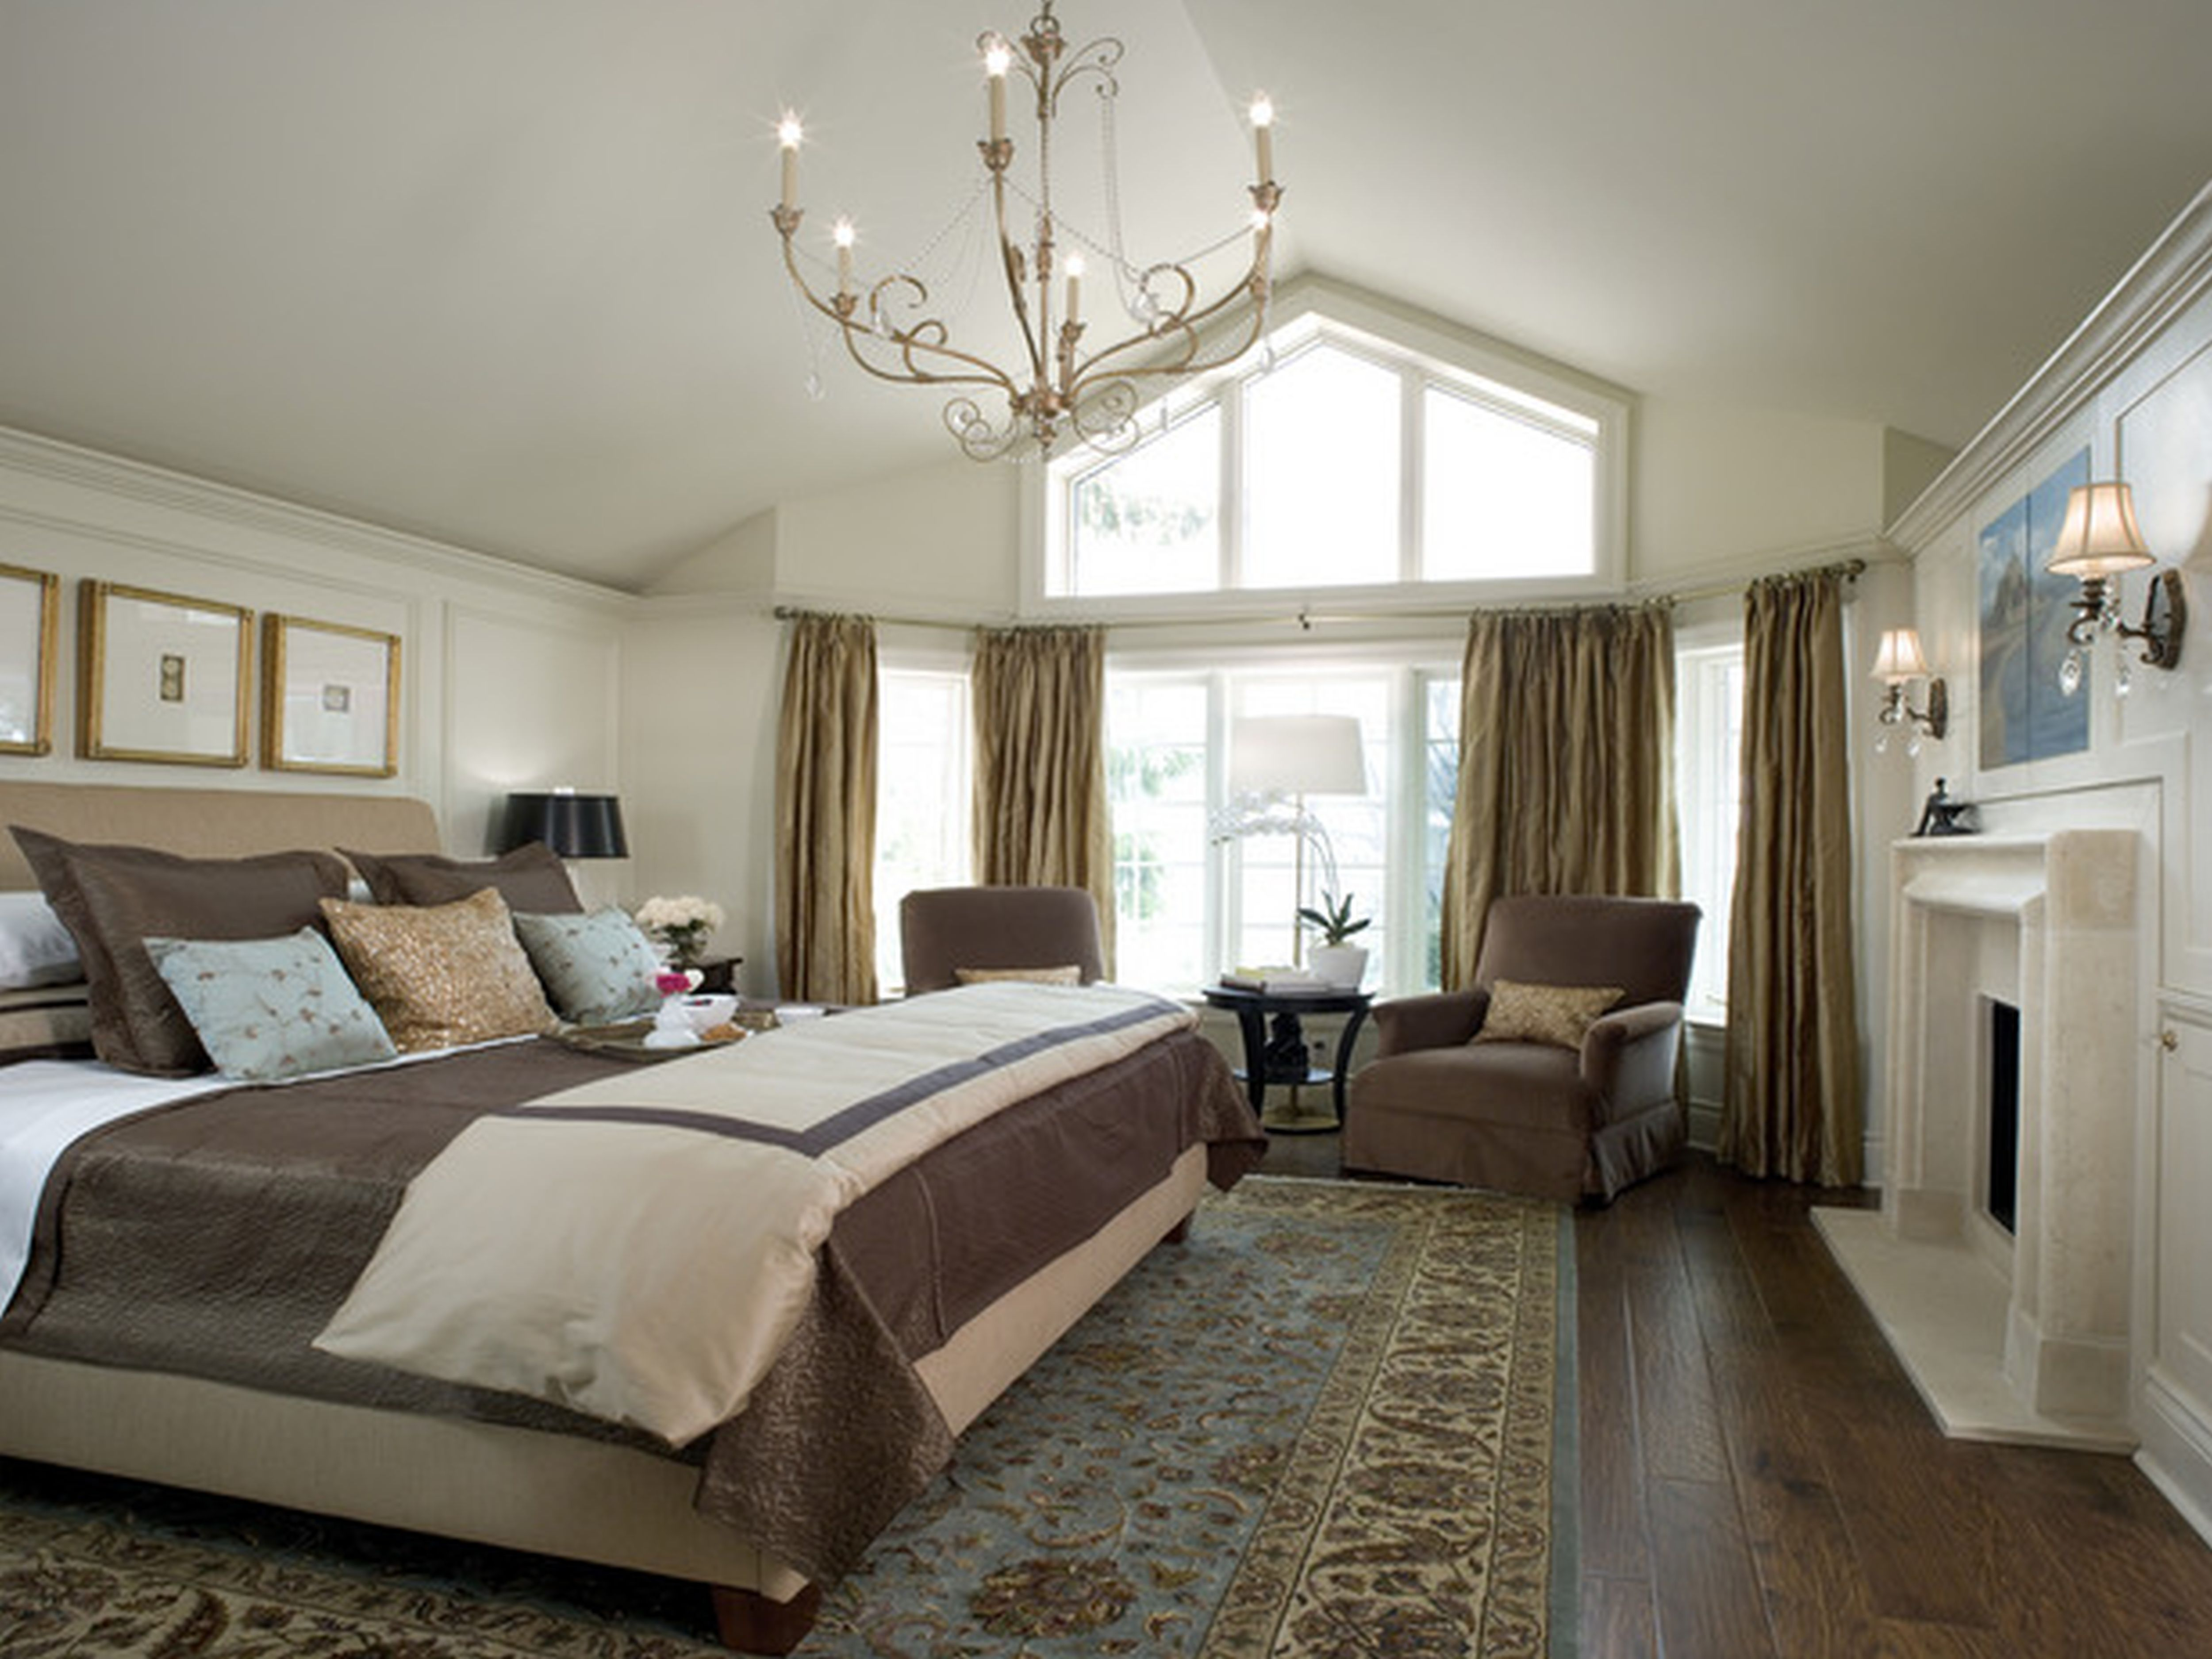 Best Elegant Bedroom Decorating Ideas About Interior Remodel Ideas within Modern Elegant Bedroom